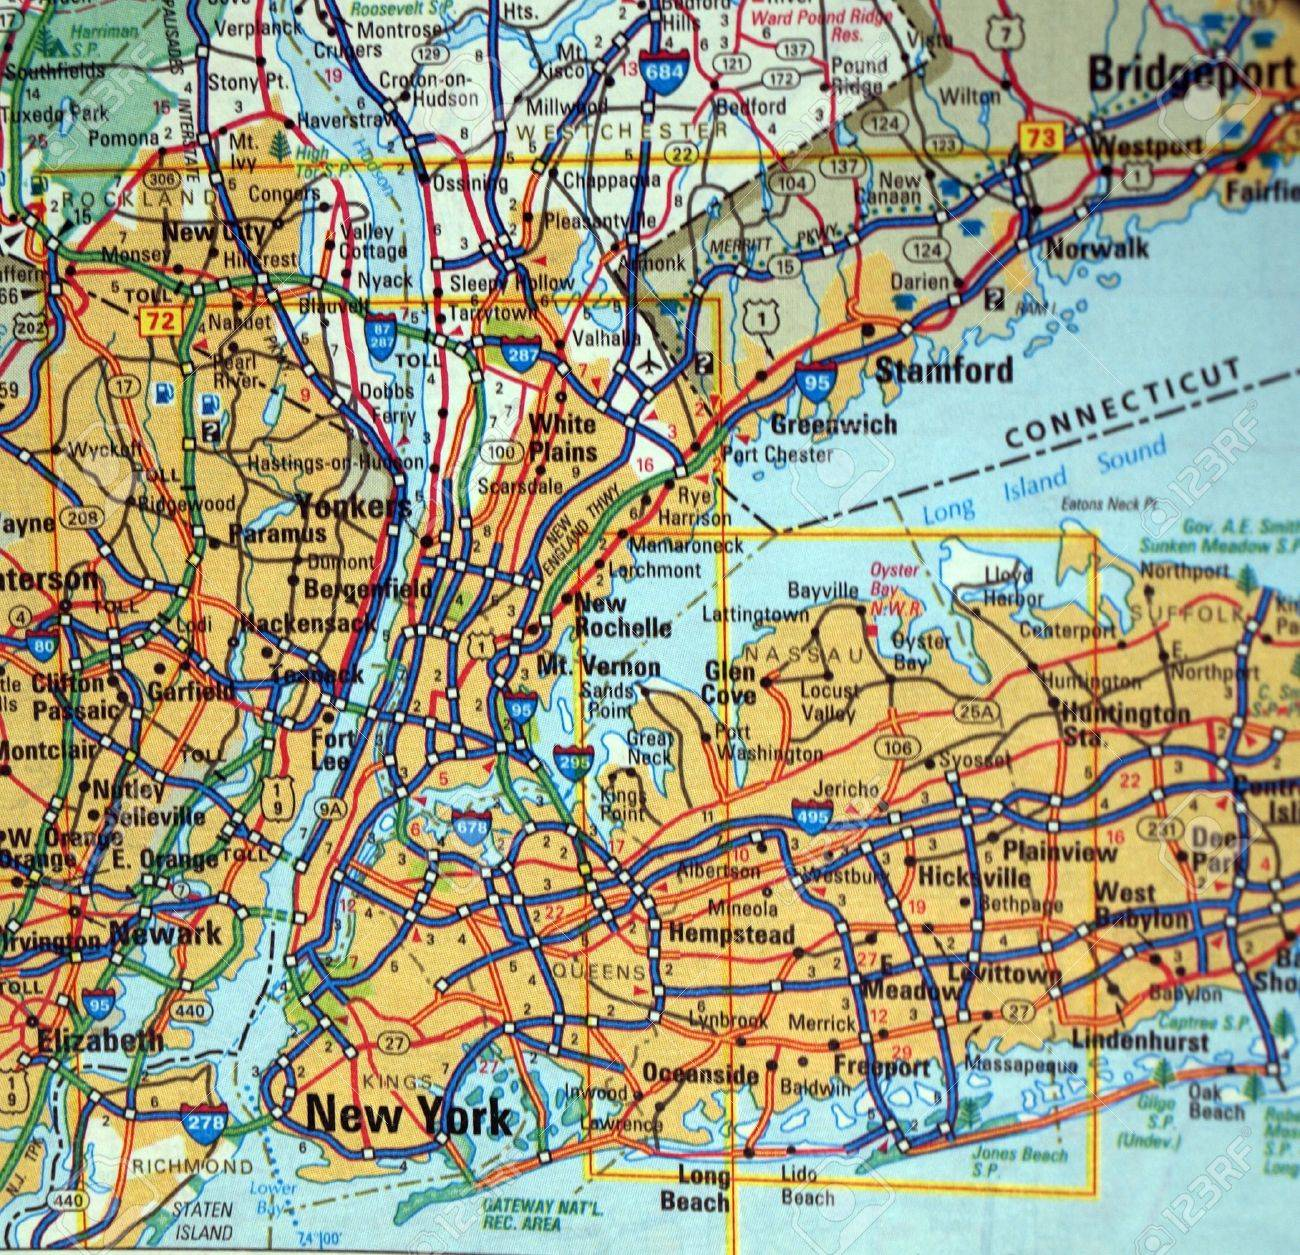 A Road Map Of The New York City NY Metropolitan Area Stock Photo